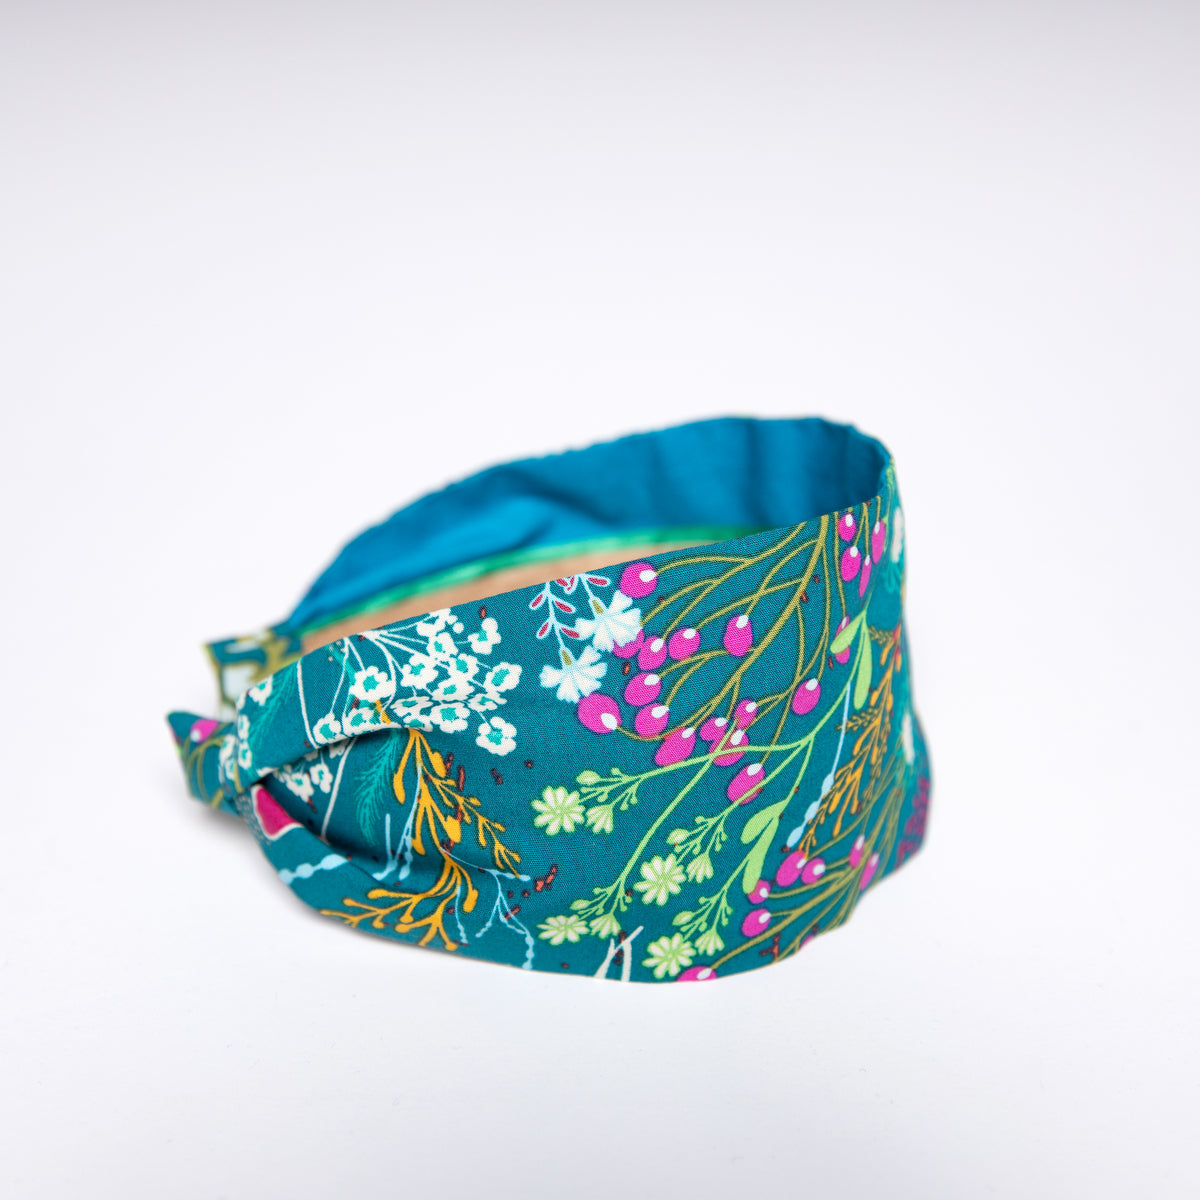 Cookie and the Dude Classic Headband in Teal Meadow